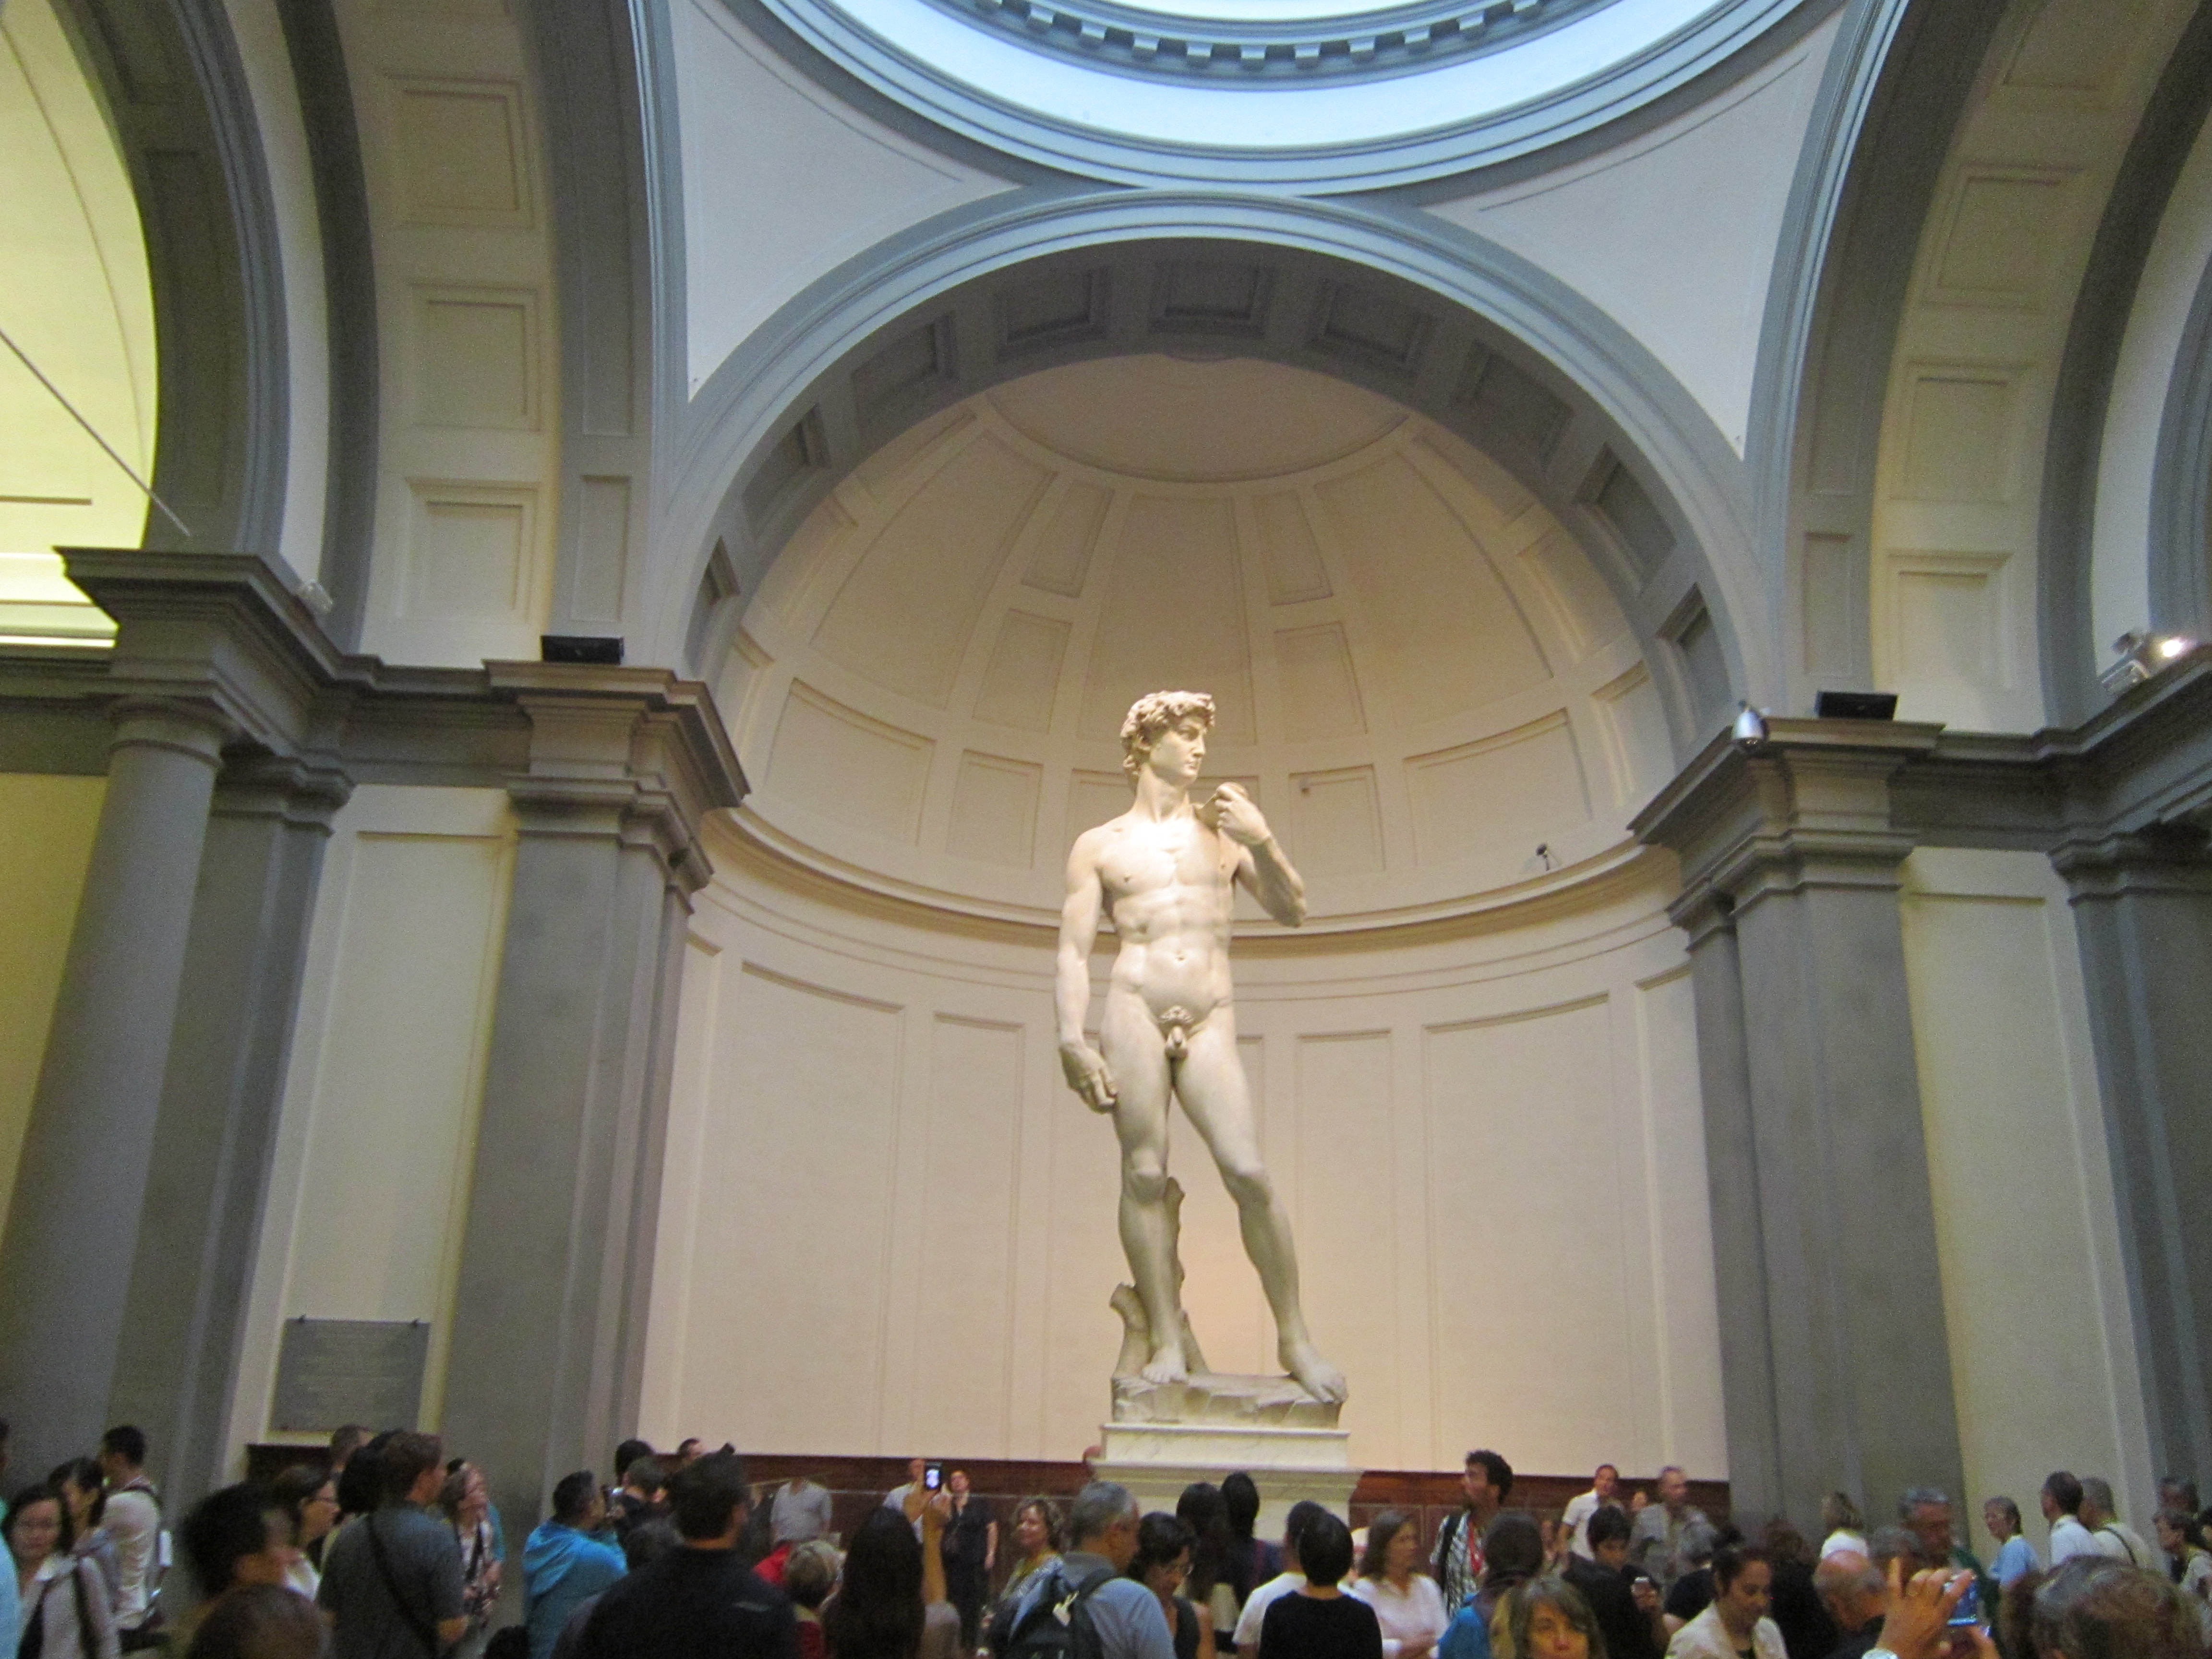 The David statue, with people all around it's bottom looking up at it